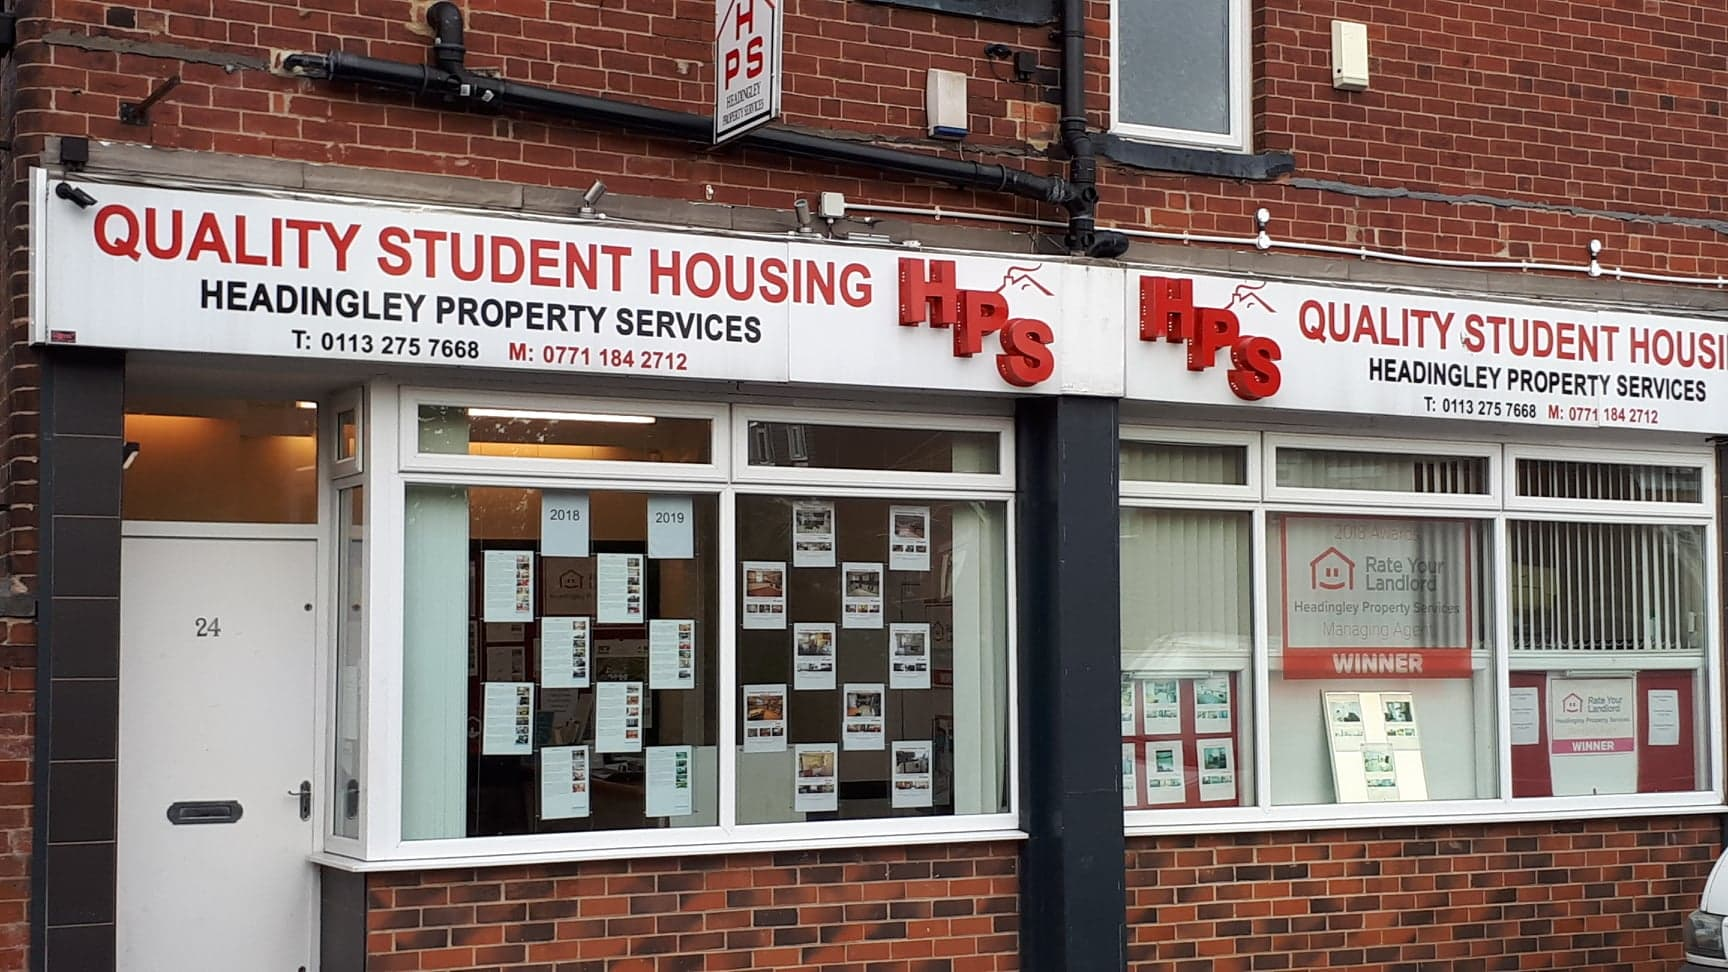 Headingley Property Services